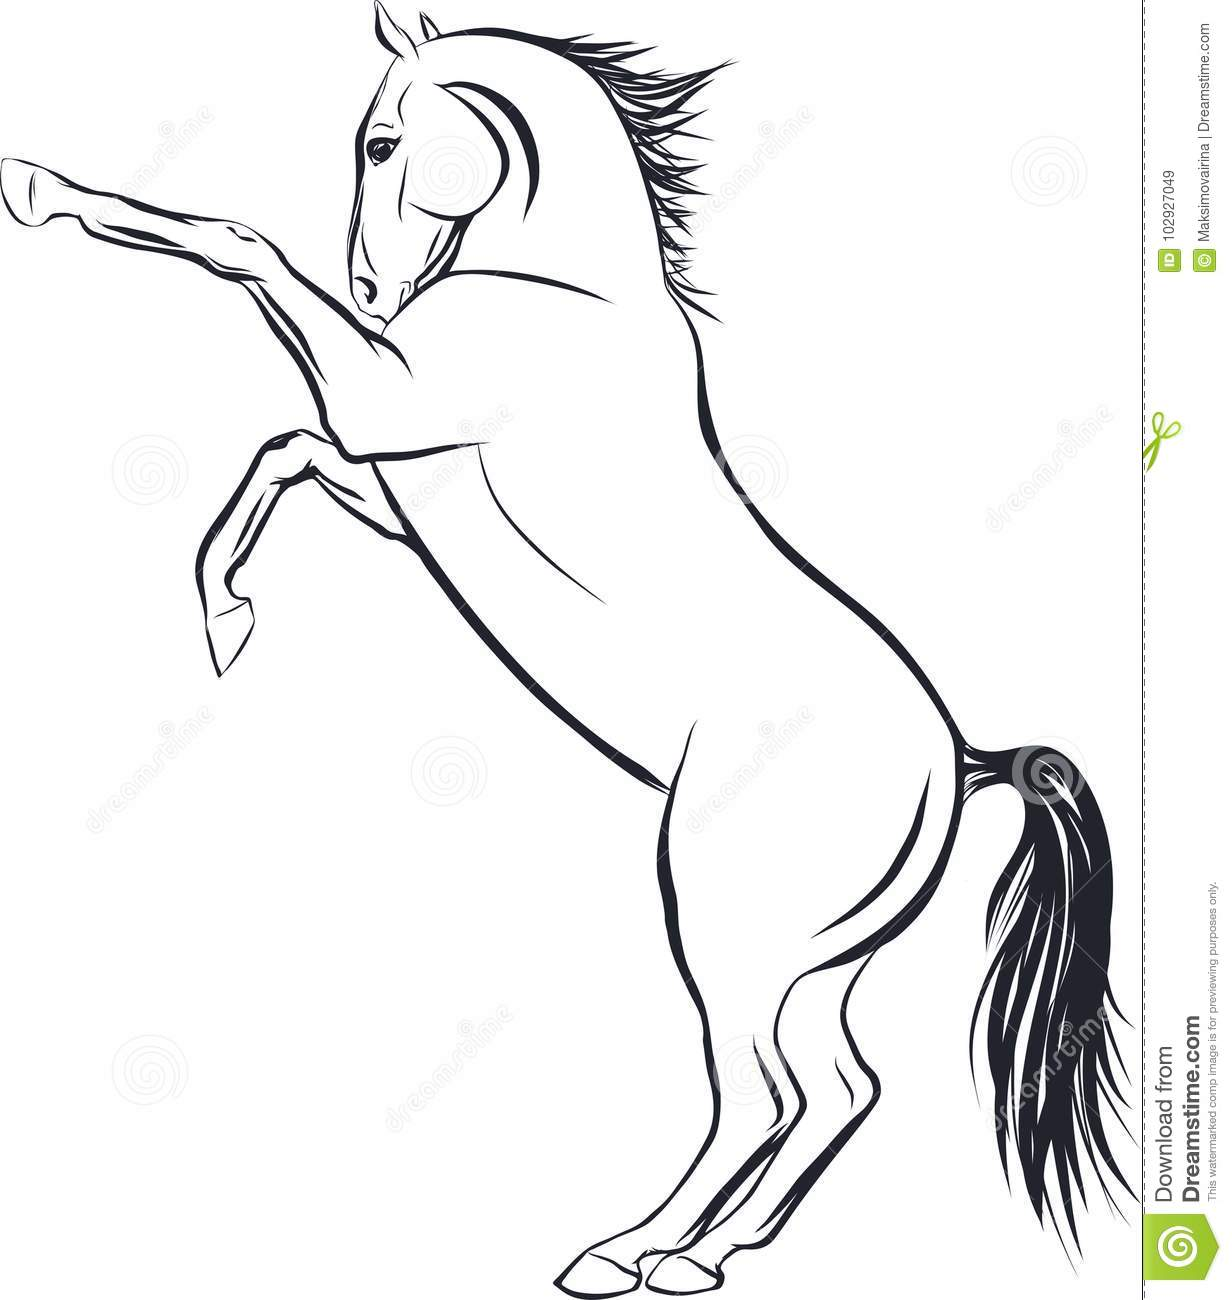 Sketch Of The Horse Standing On Hind Legs Stock Vector Illustration Of Design Nature 102927049